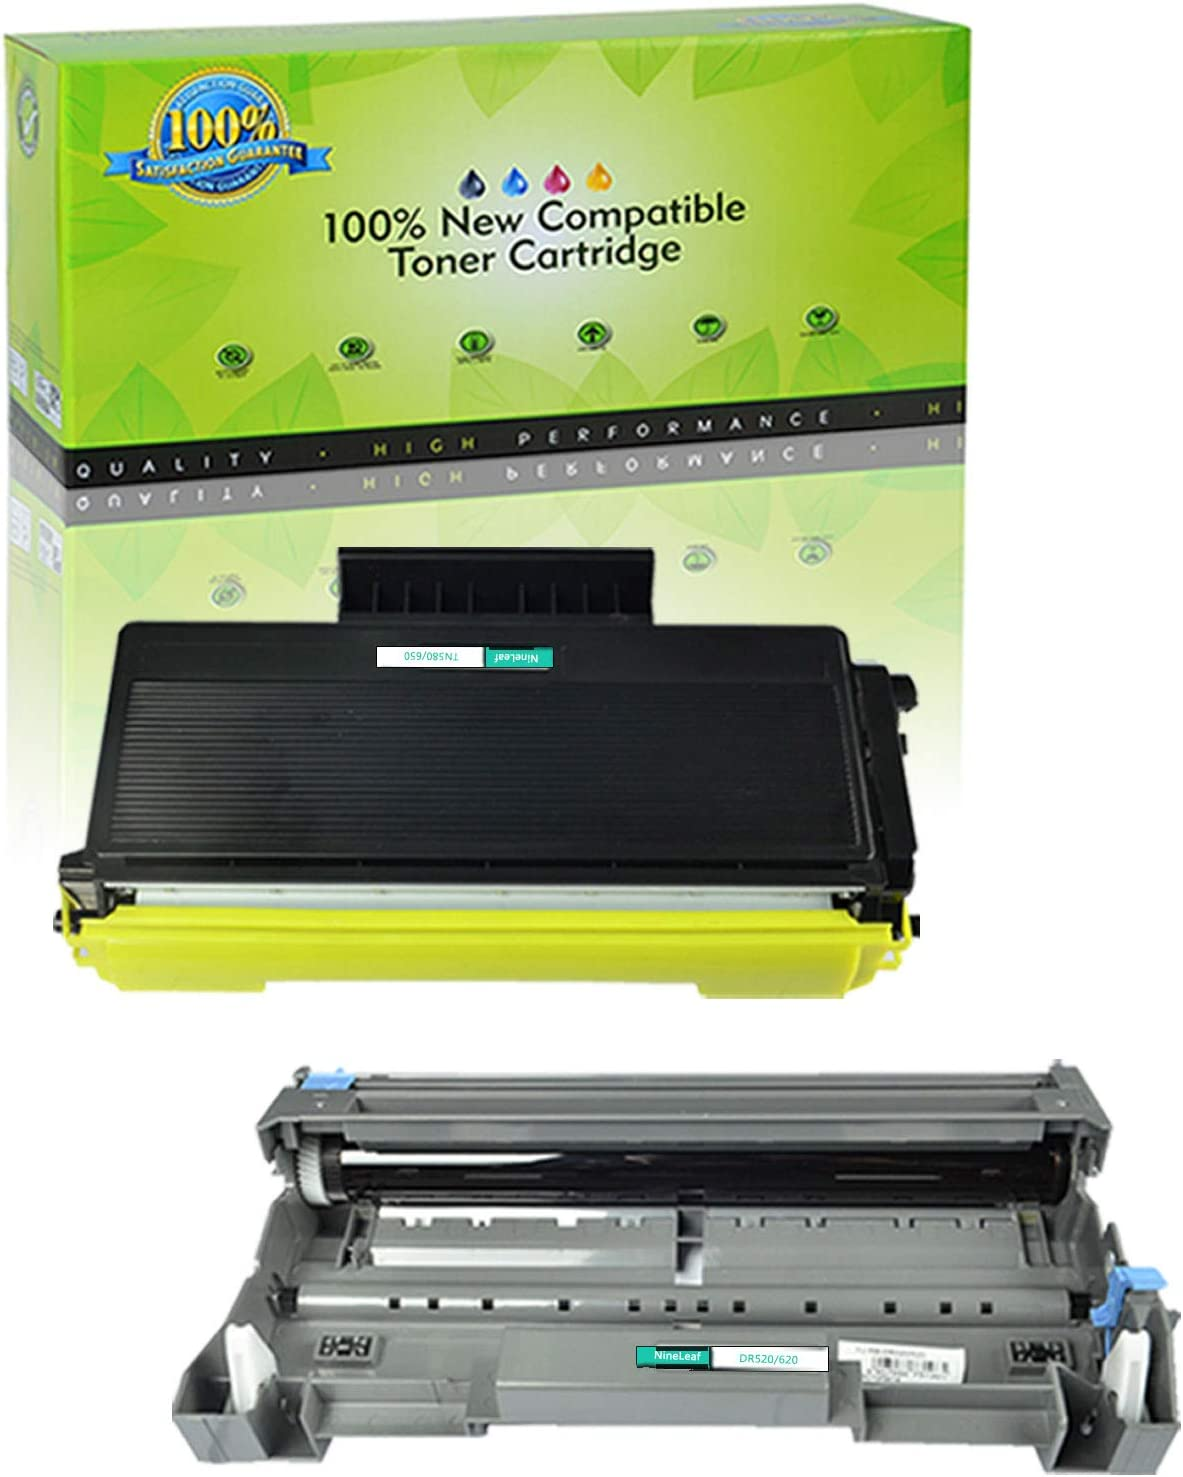 10PK New TN580 DR520 Toner Cartridge for  DCP-8060 DCP-8065DN USA SELLER!